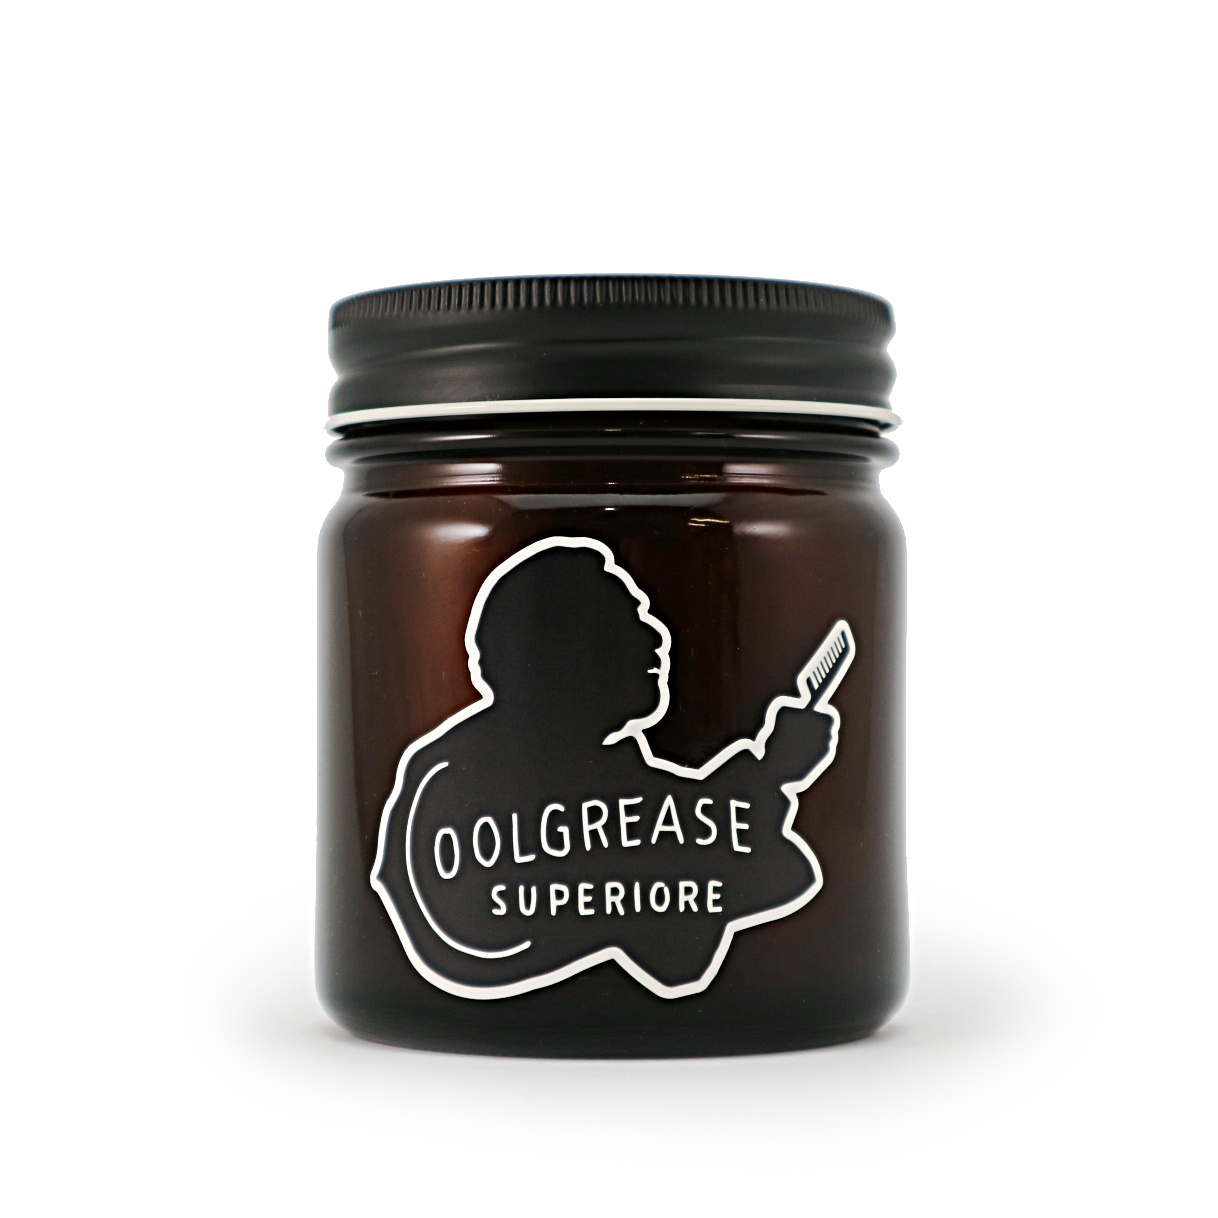 POMADE STANDARD/COOL GREASE SUPERIORE(ポマード)